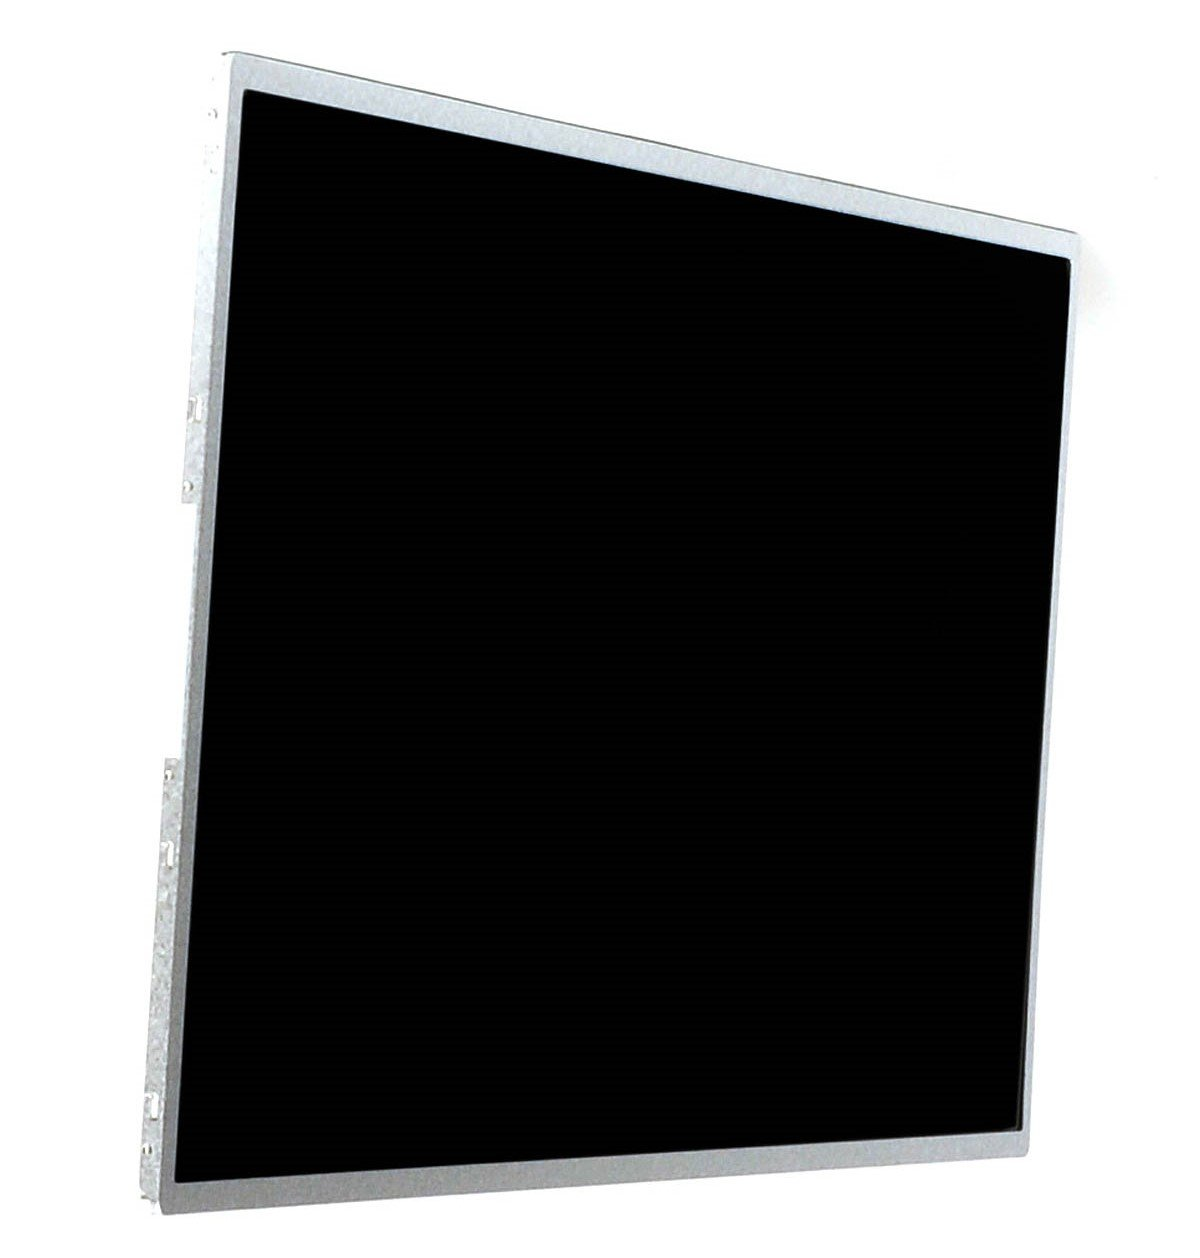 SUBSTITUTE REPLACEMENT LCD SCREEN ONLY. NOT A LAPTOP SAMSUNG LTN140AT28-T01 LAPTOP LCD SCREEN 14.0 WXGA HD DIODE